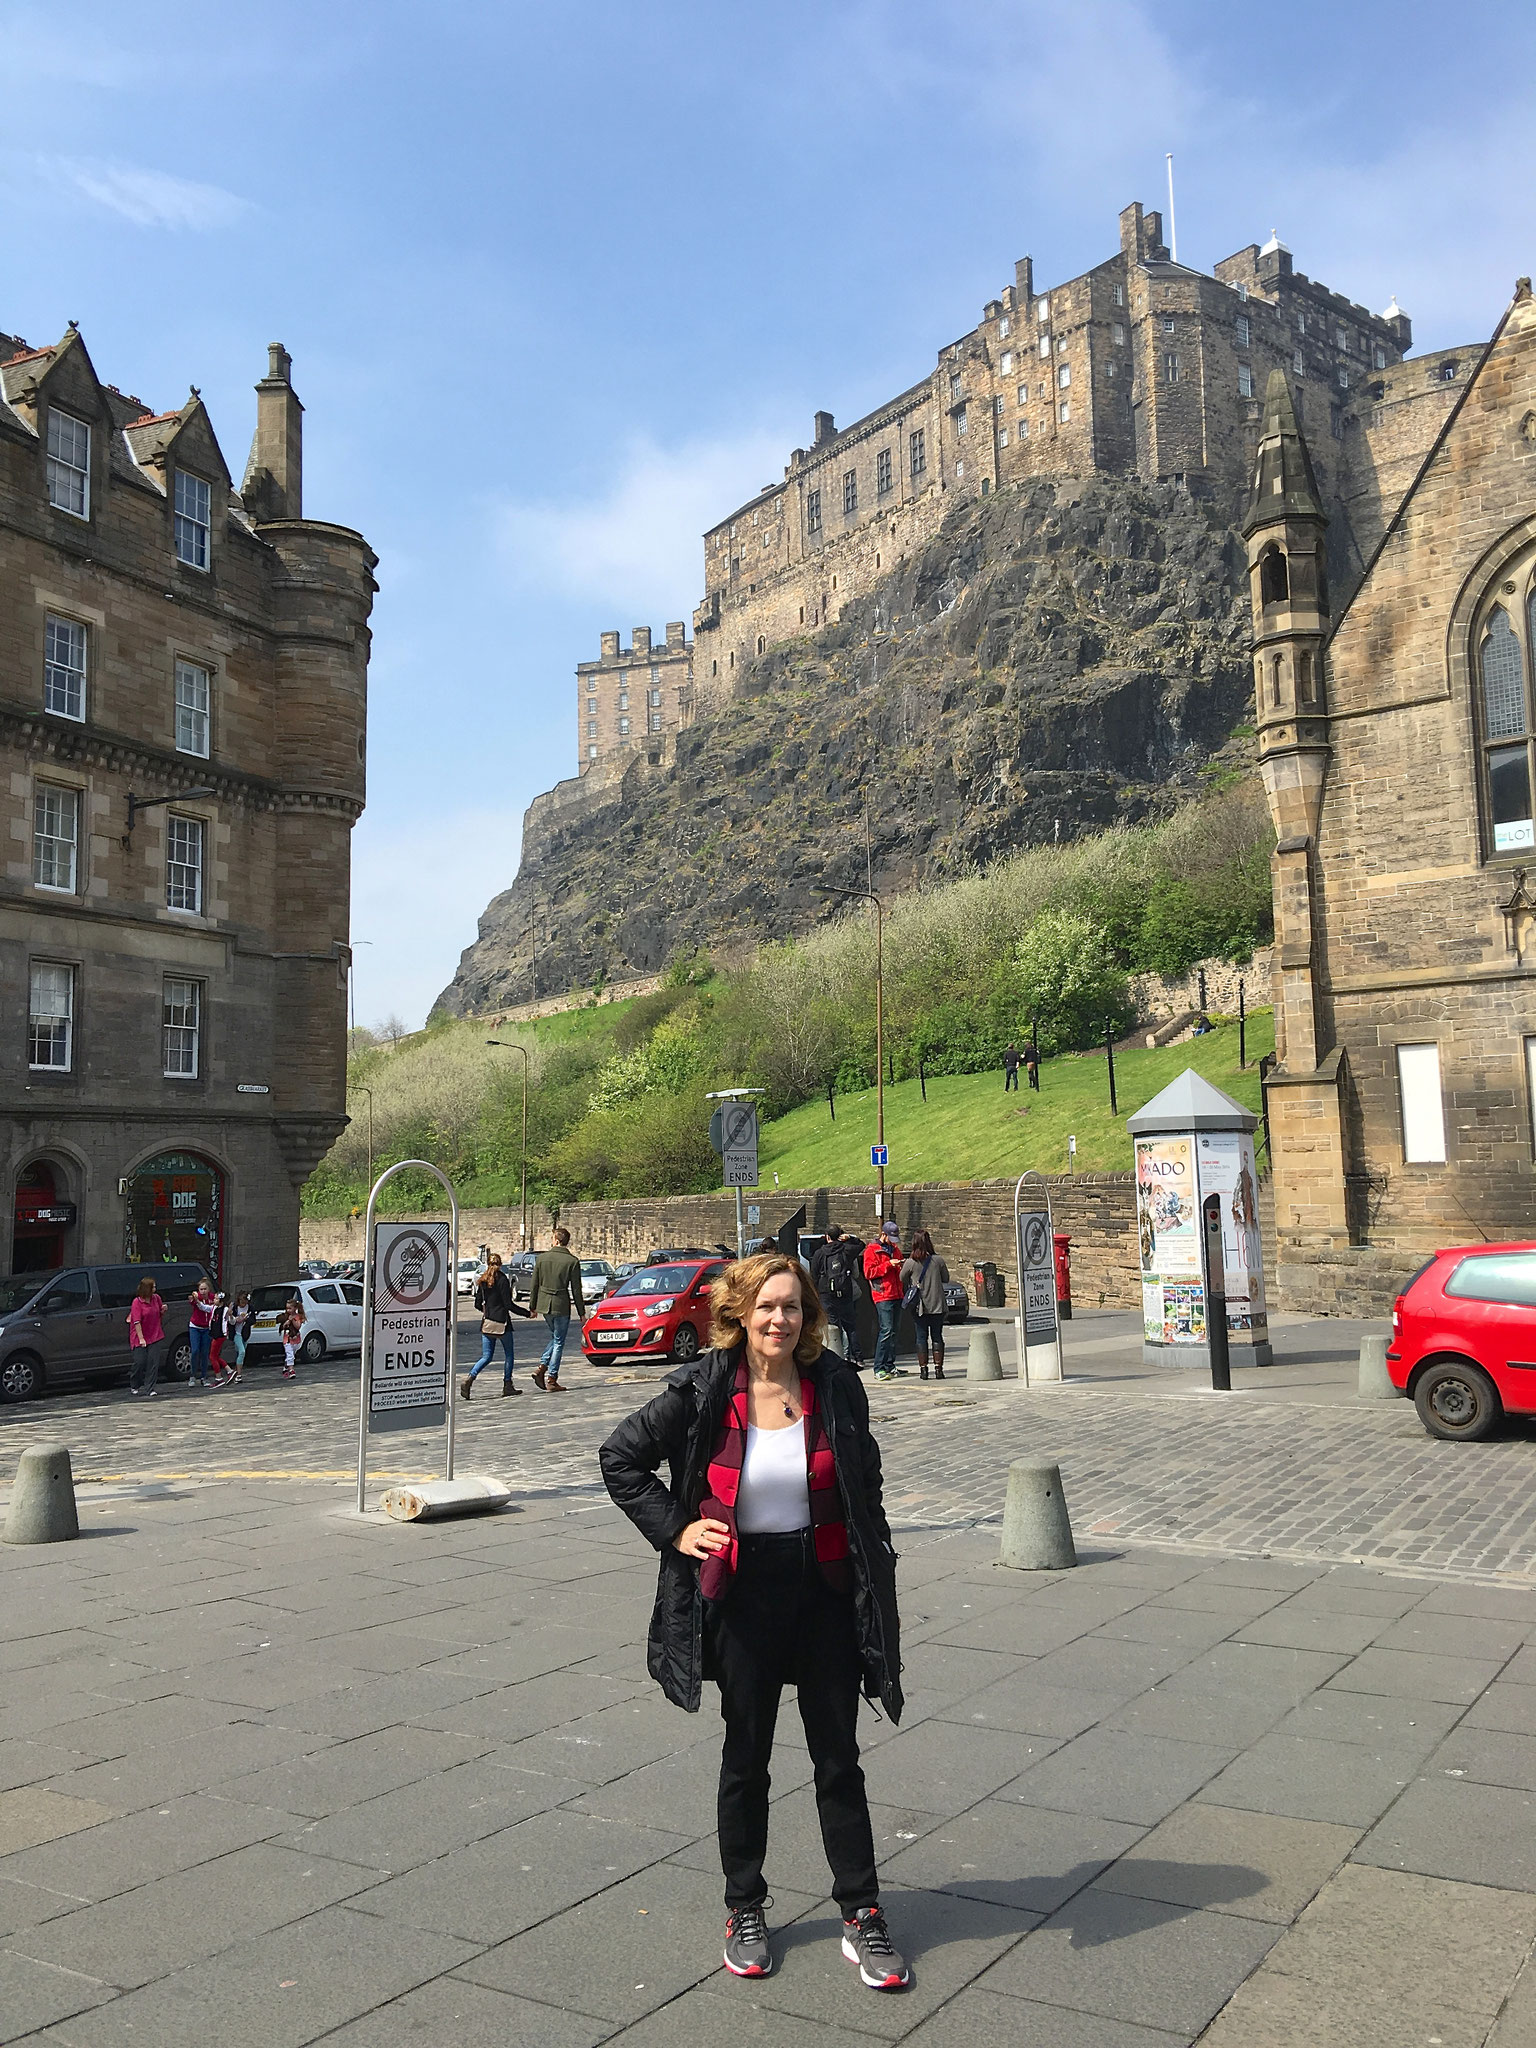 Lorraine Gudas at the Edinburgh Castle, May 6, 2016